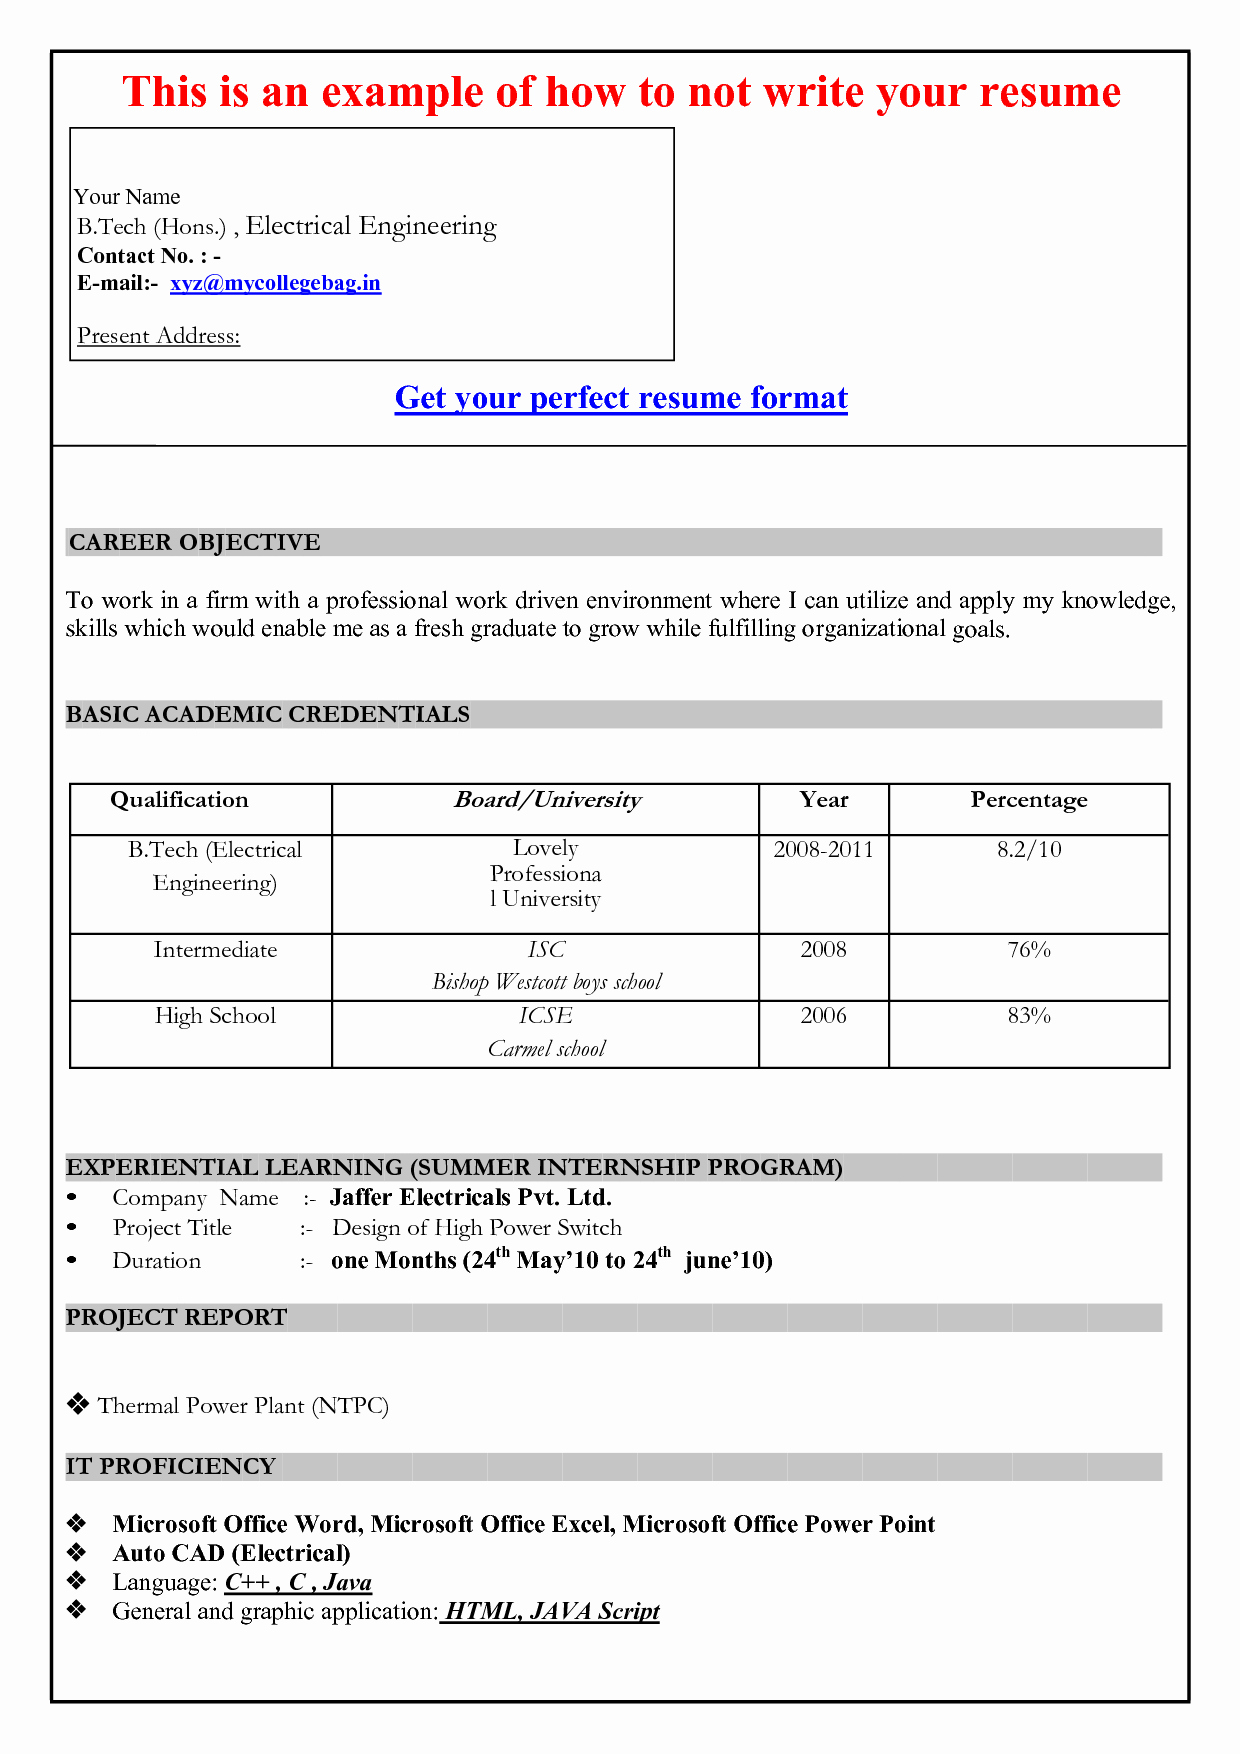 Resume Template Ms Word 2010 Best Of How to Upload A Resume Template Microsoft Word 2010